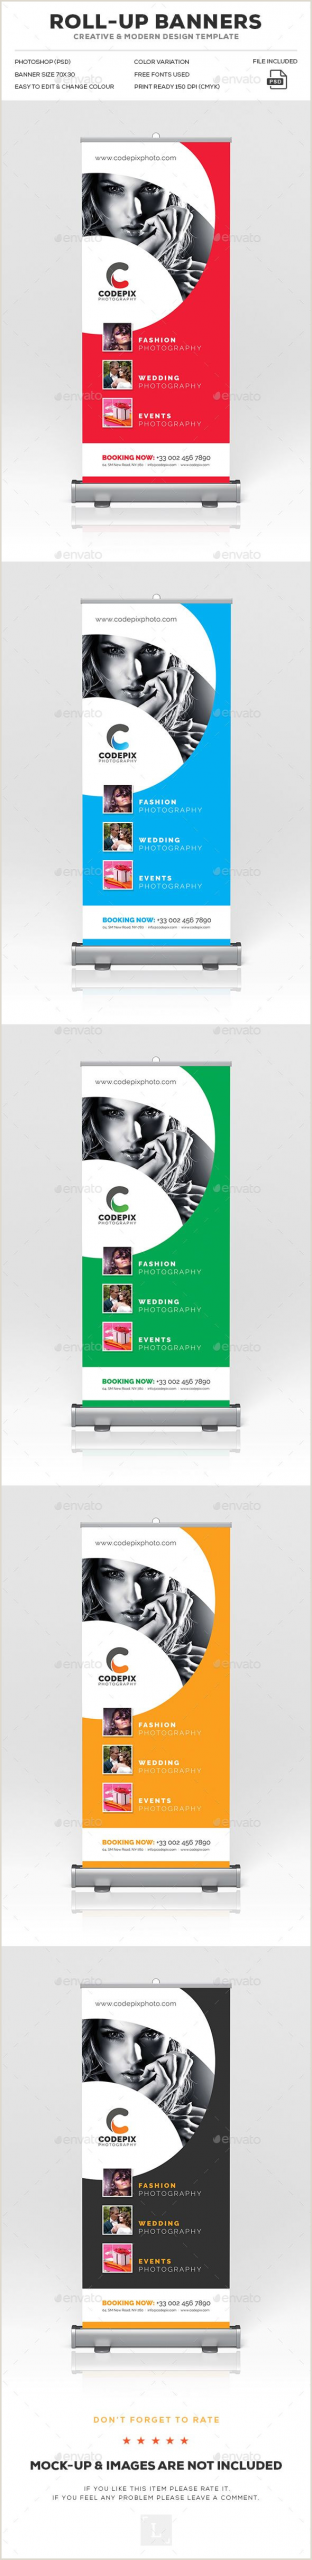 Pop Up Marketing Banners Vertical Banner Stand Staples